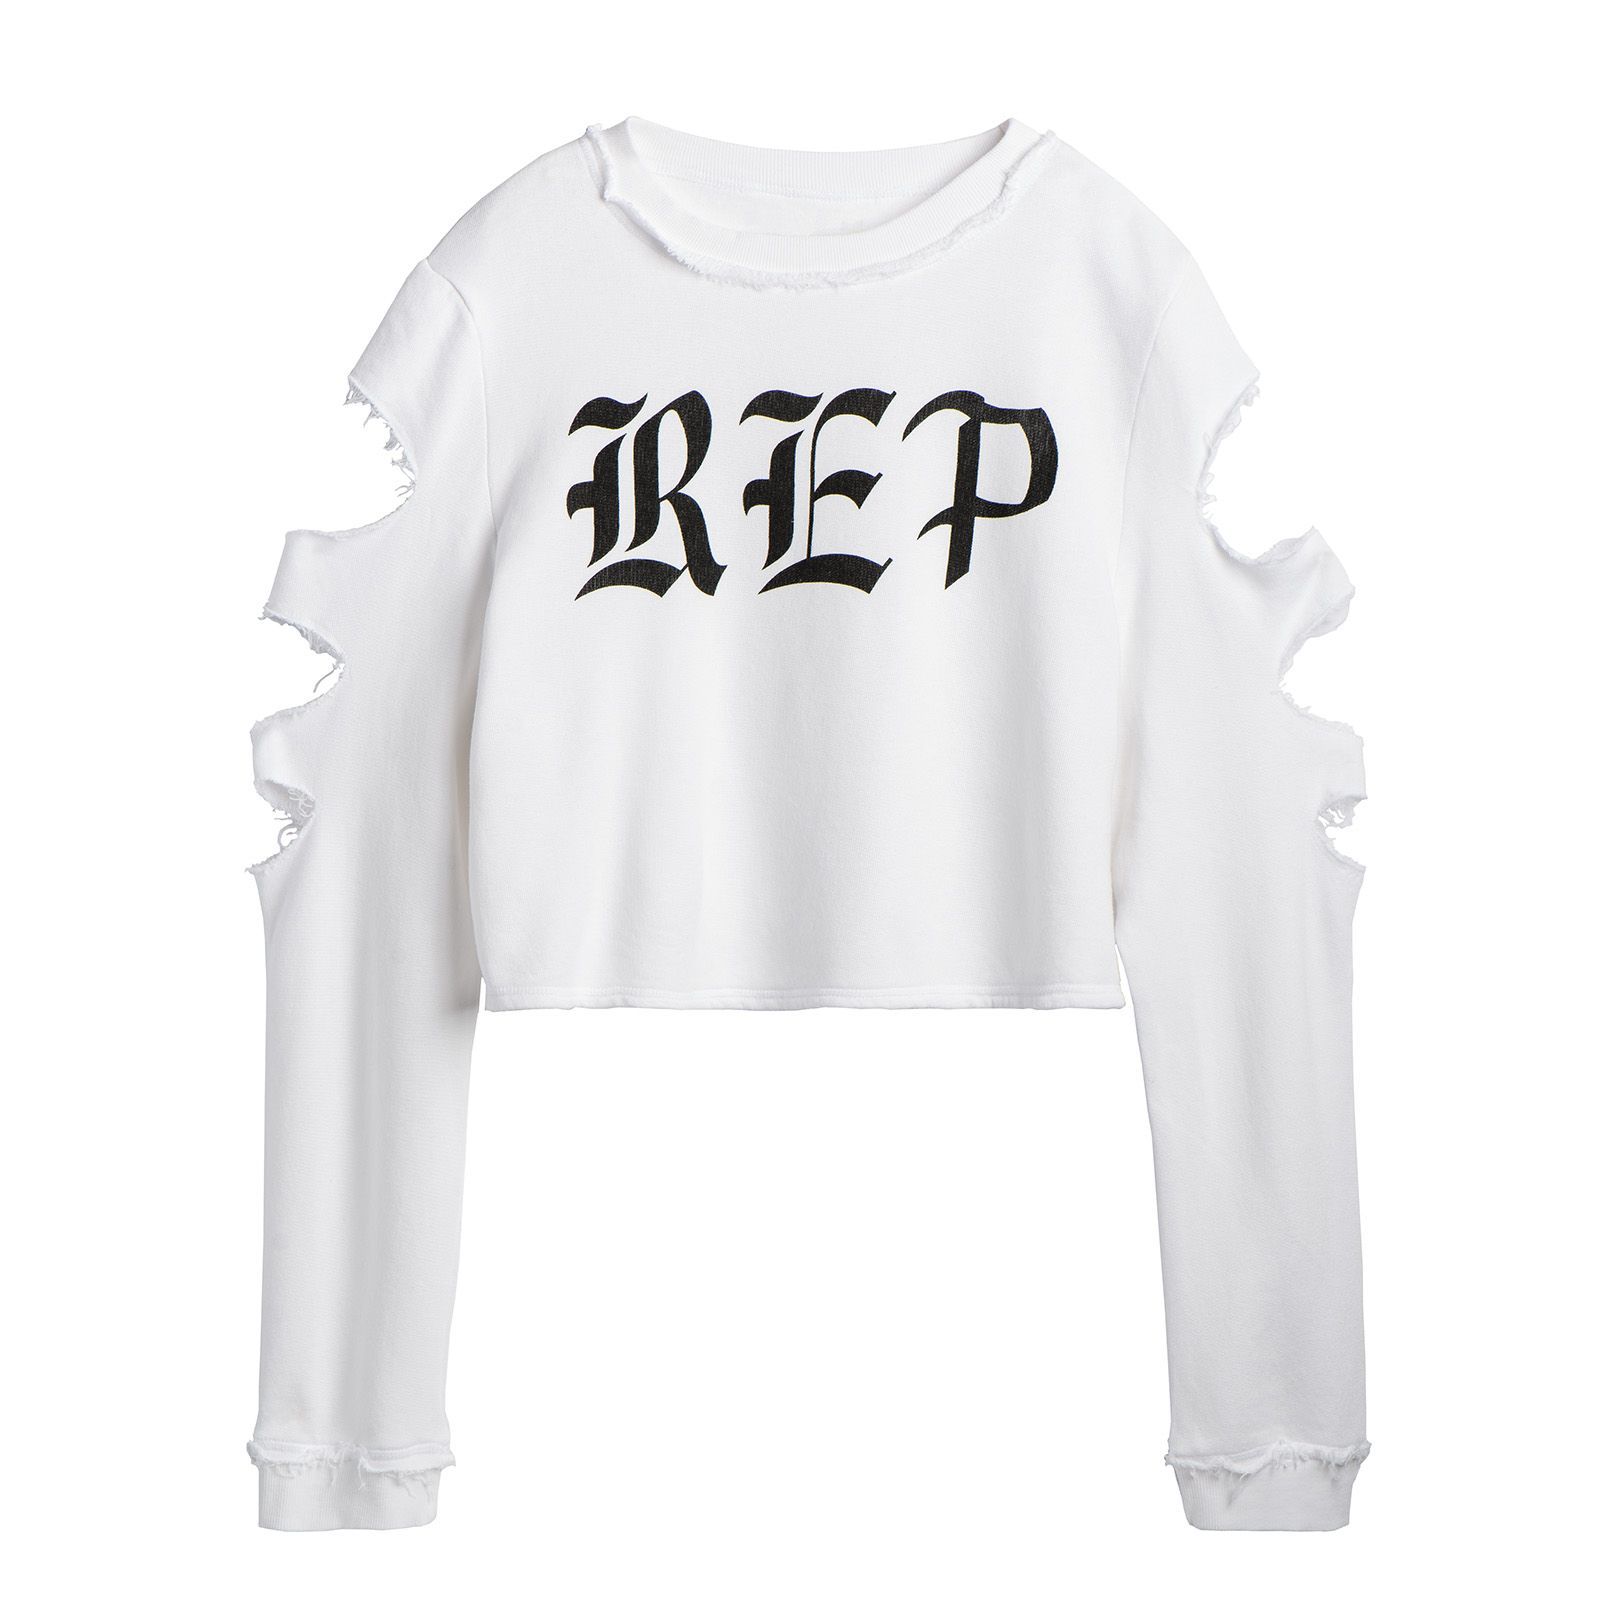 Taylor S Upcoming Album Reputation Hits Stores Nov 10th Pre Order Official Merchandise Now Taylor Swift Shirts Taylor Swift Outfits Taylor Swift Merchandise